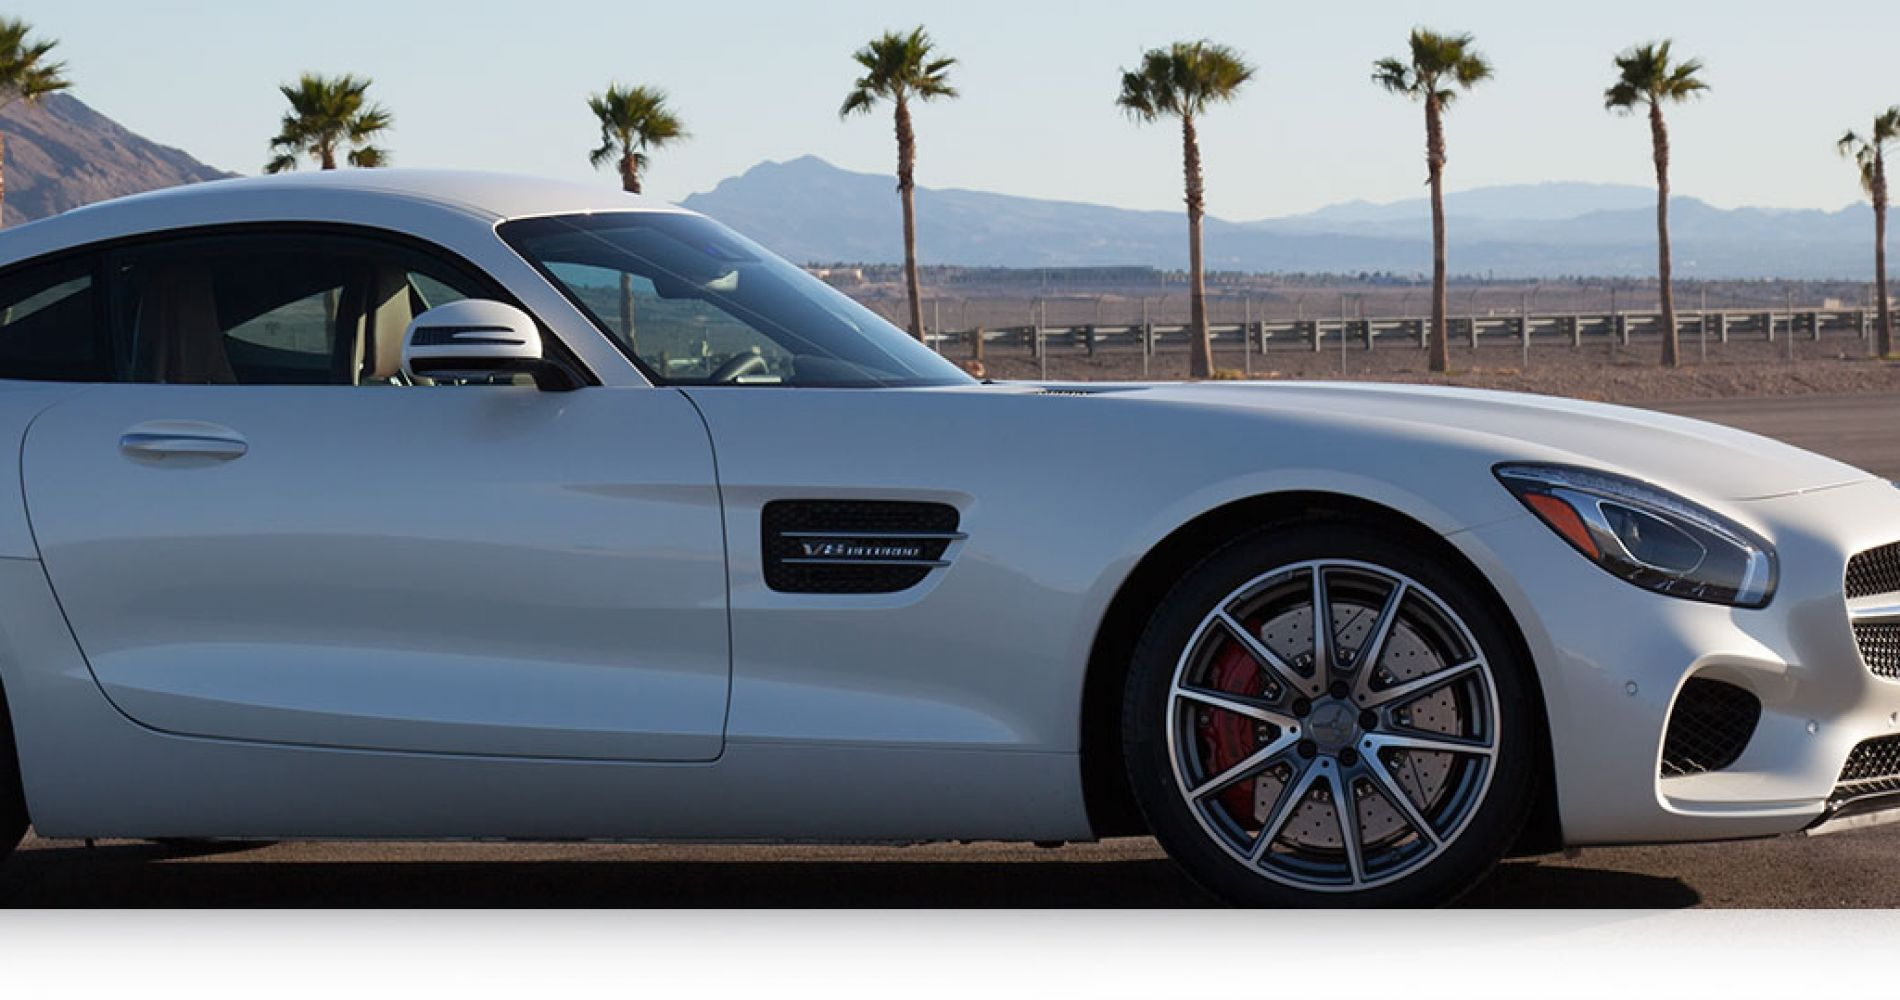 10 laps in a supercar of your choice in Las Vegas